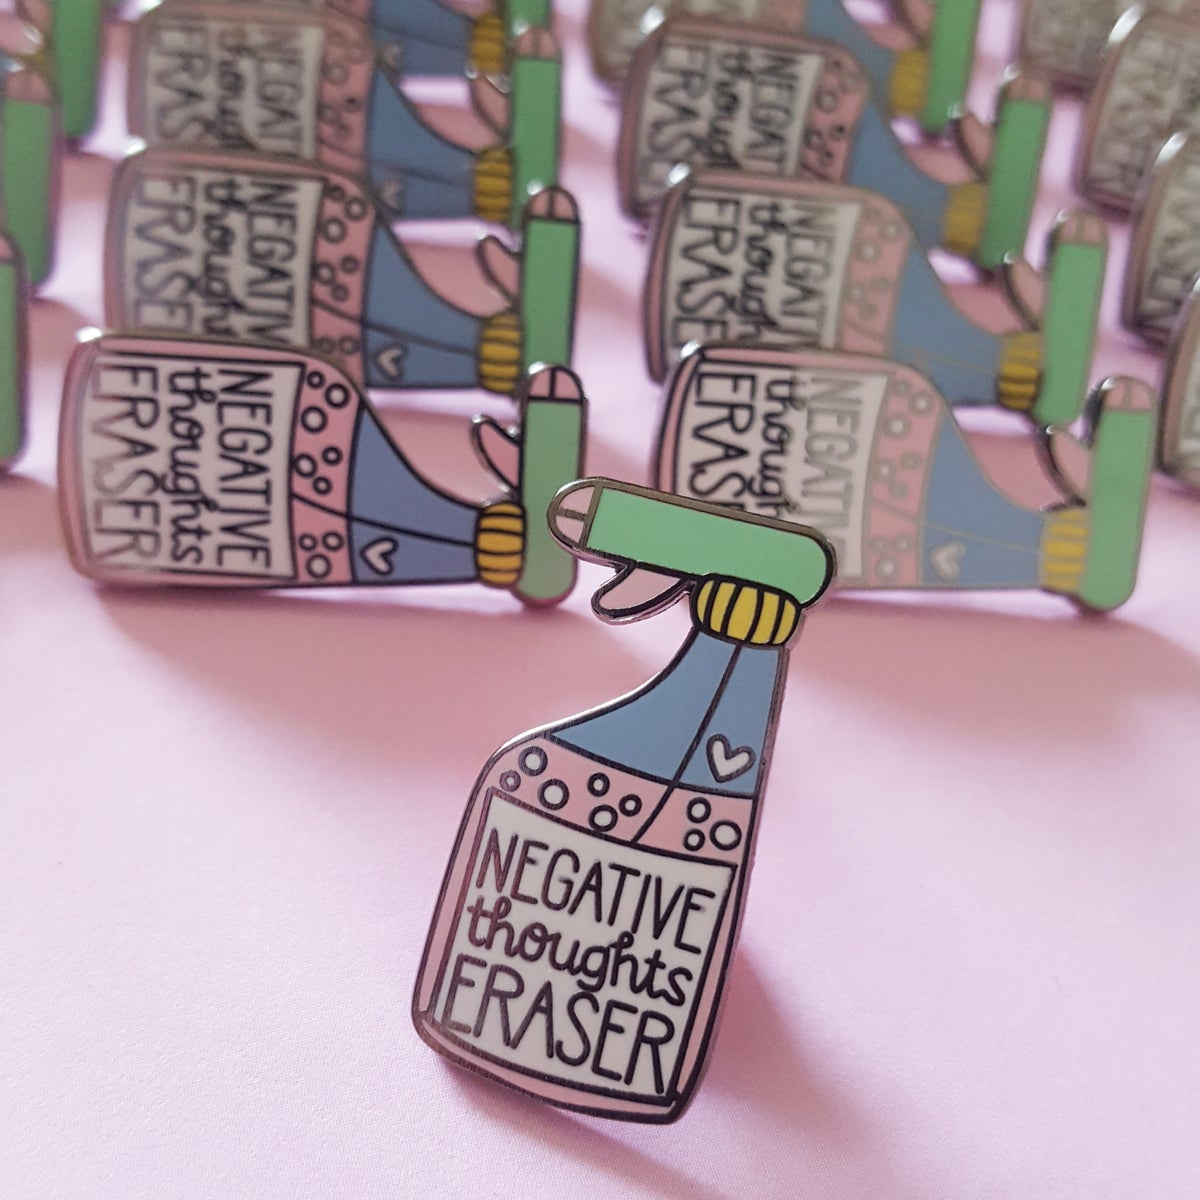 Negative Thoughts Eraser Enamel Pin